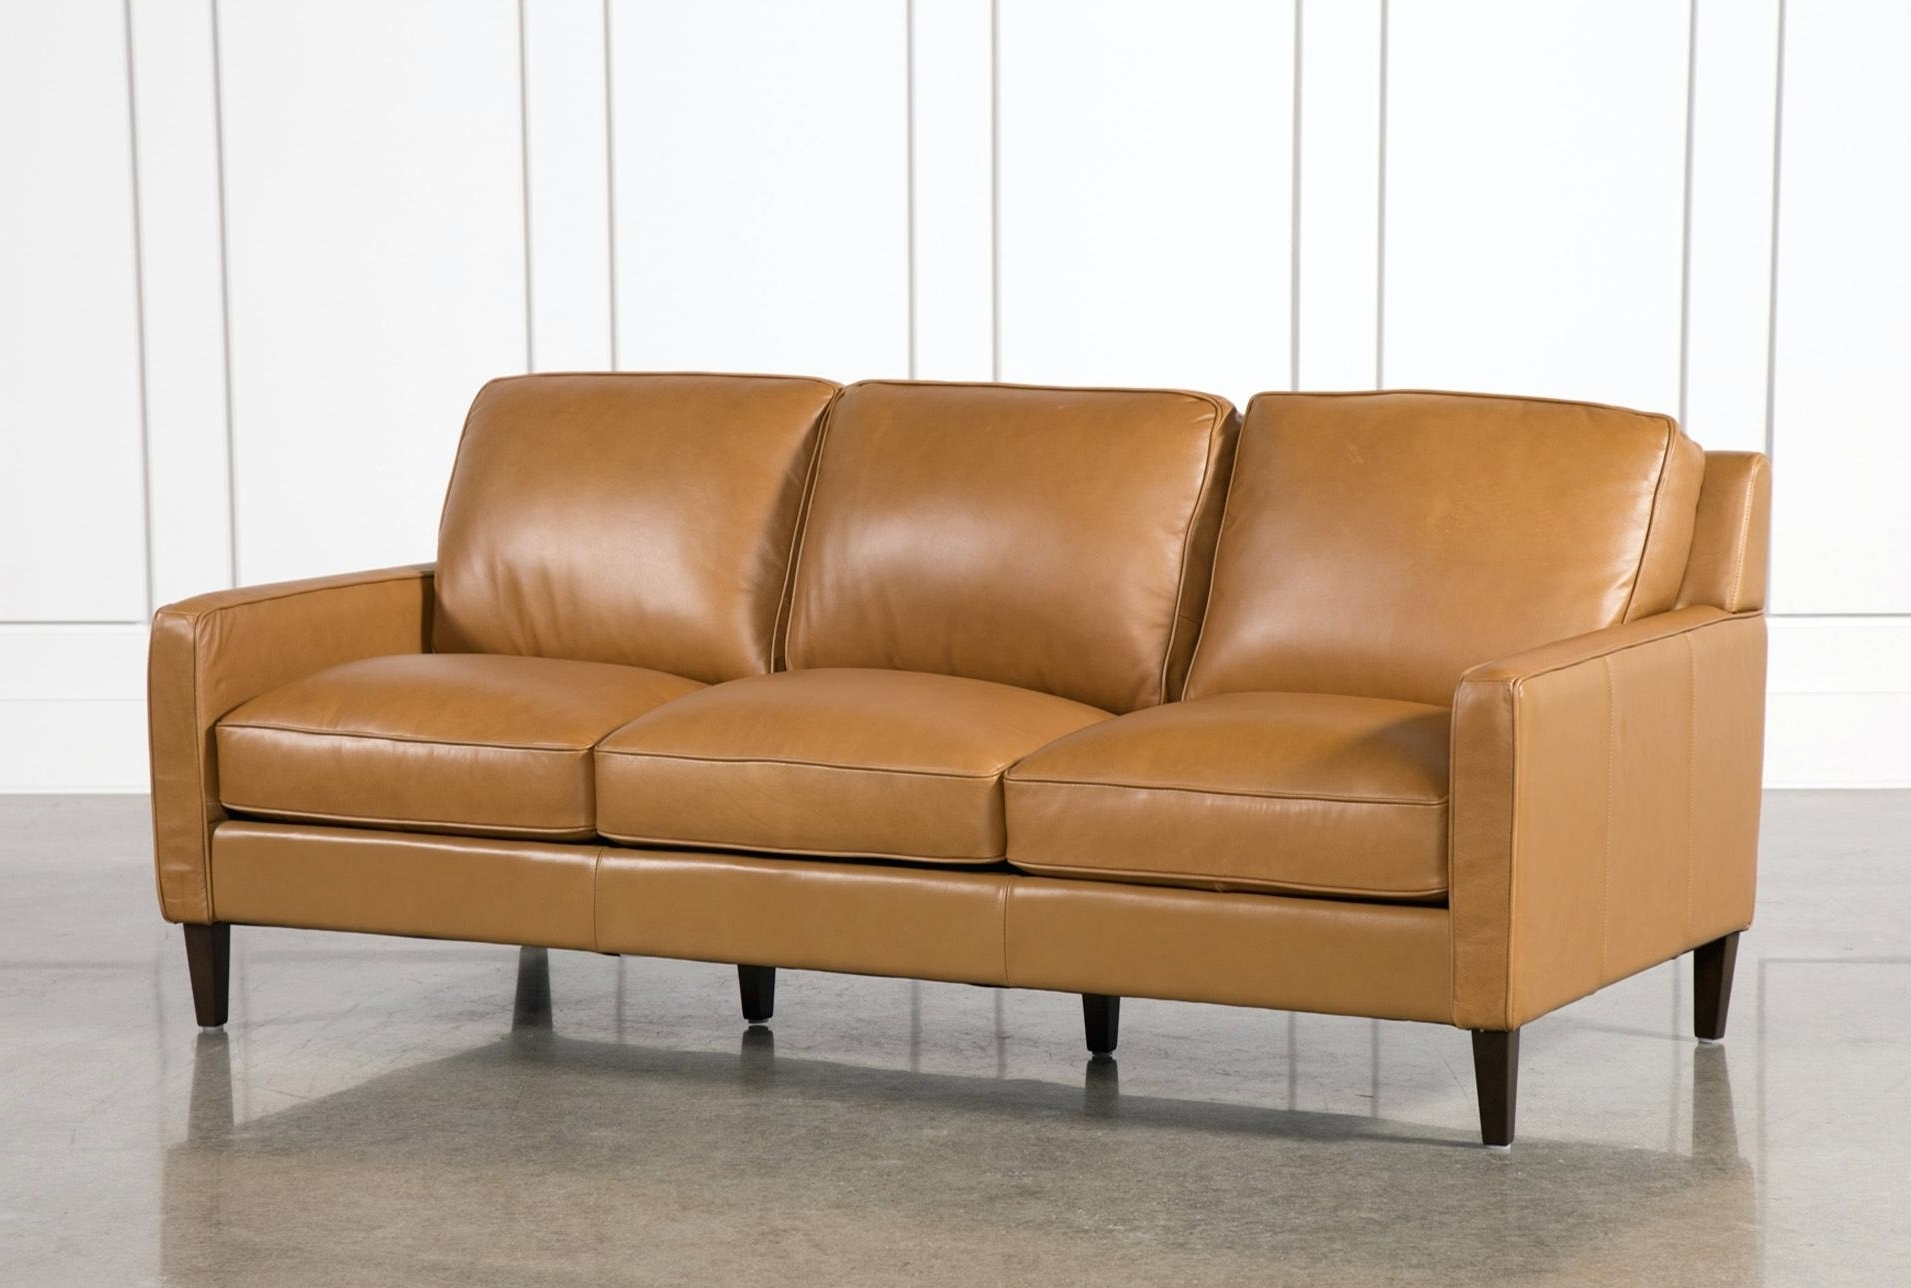 2019 Leather Furniture Phoenix Sofas Az Used Sectional Sofa Pertaining To Phoenix Sectional Sofas (View 14 of 20)